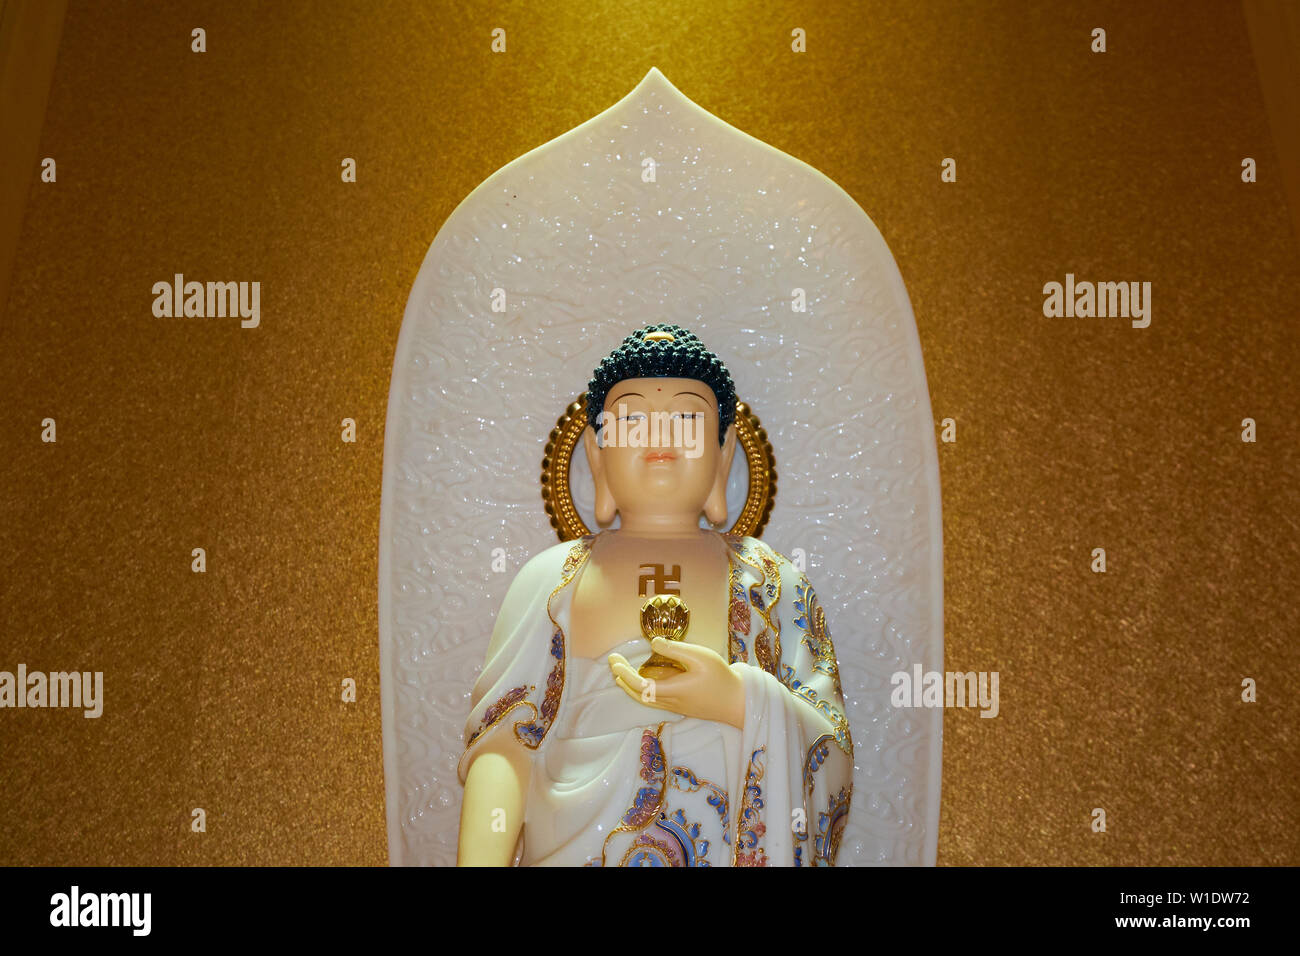 A sparkling Buddha inside the Memorial Shrine building at the Che Sui Khor Chinese temple in Kota Kinabalu, Borneo, Malaysia. - Stock Image